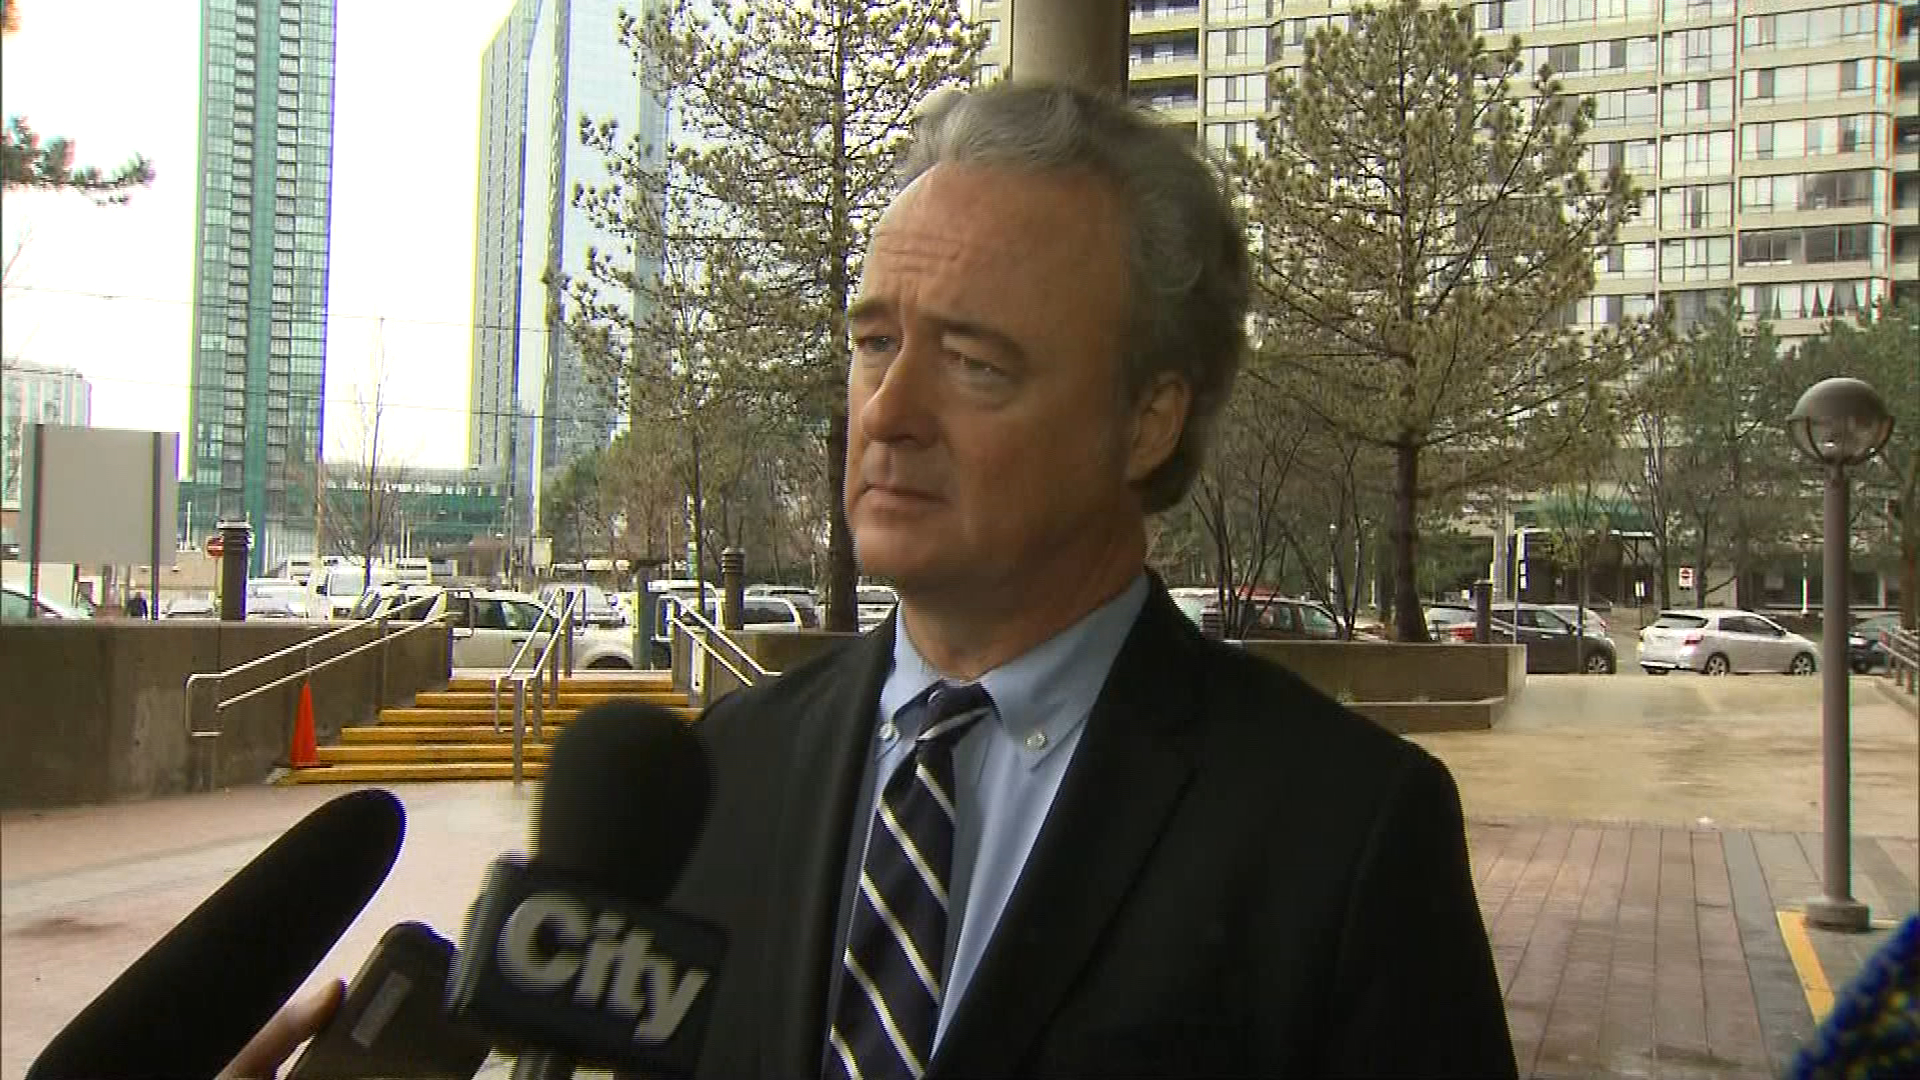 Warren Kinsella talks to CityNews in Toronto on April 25, 2017. CITYNEWS